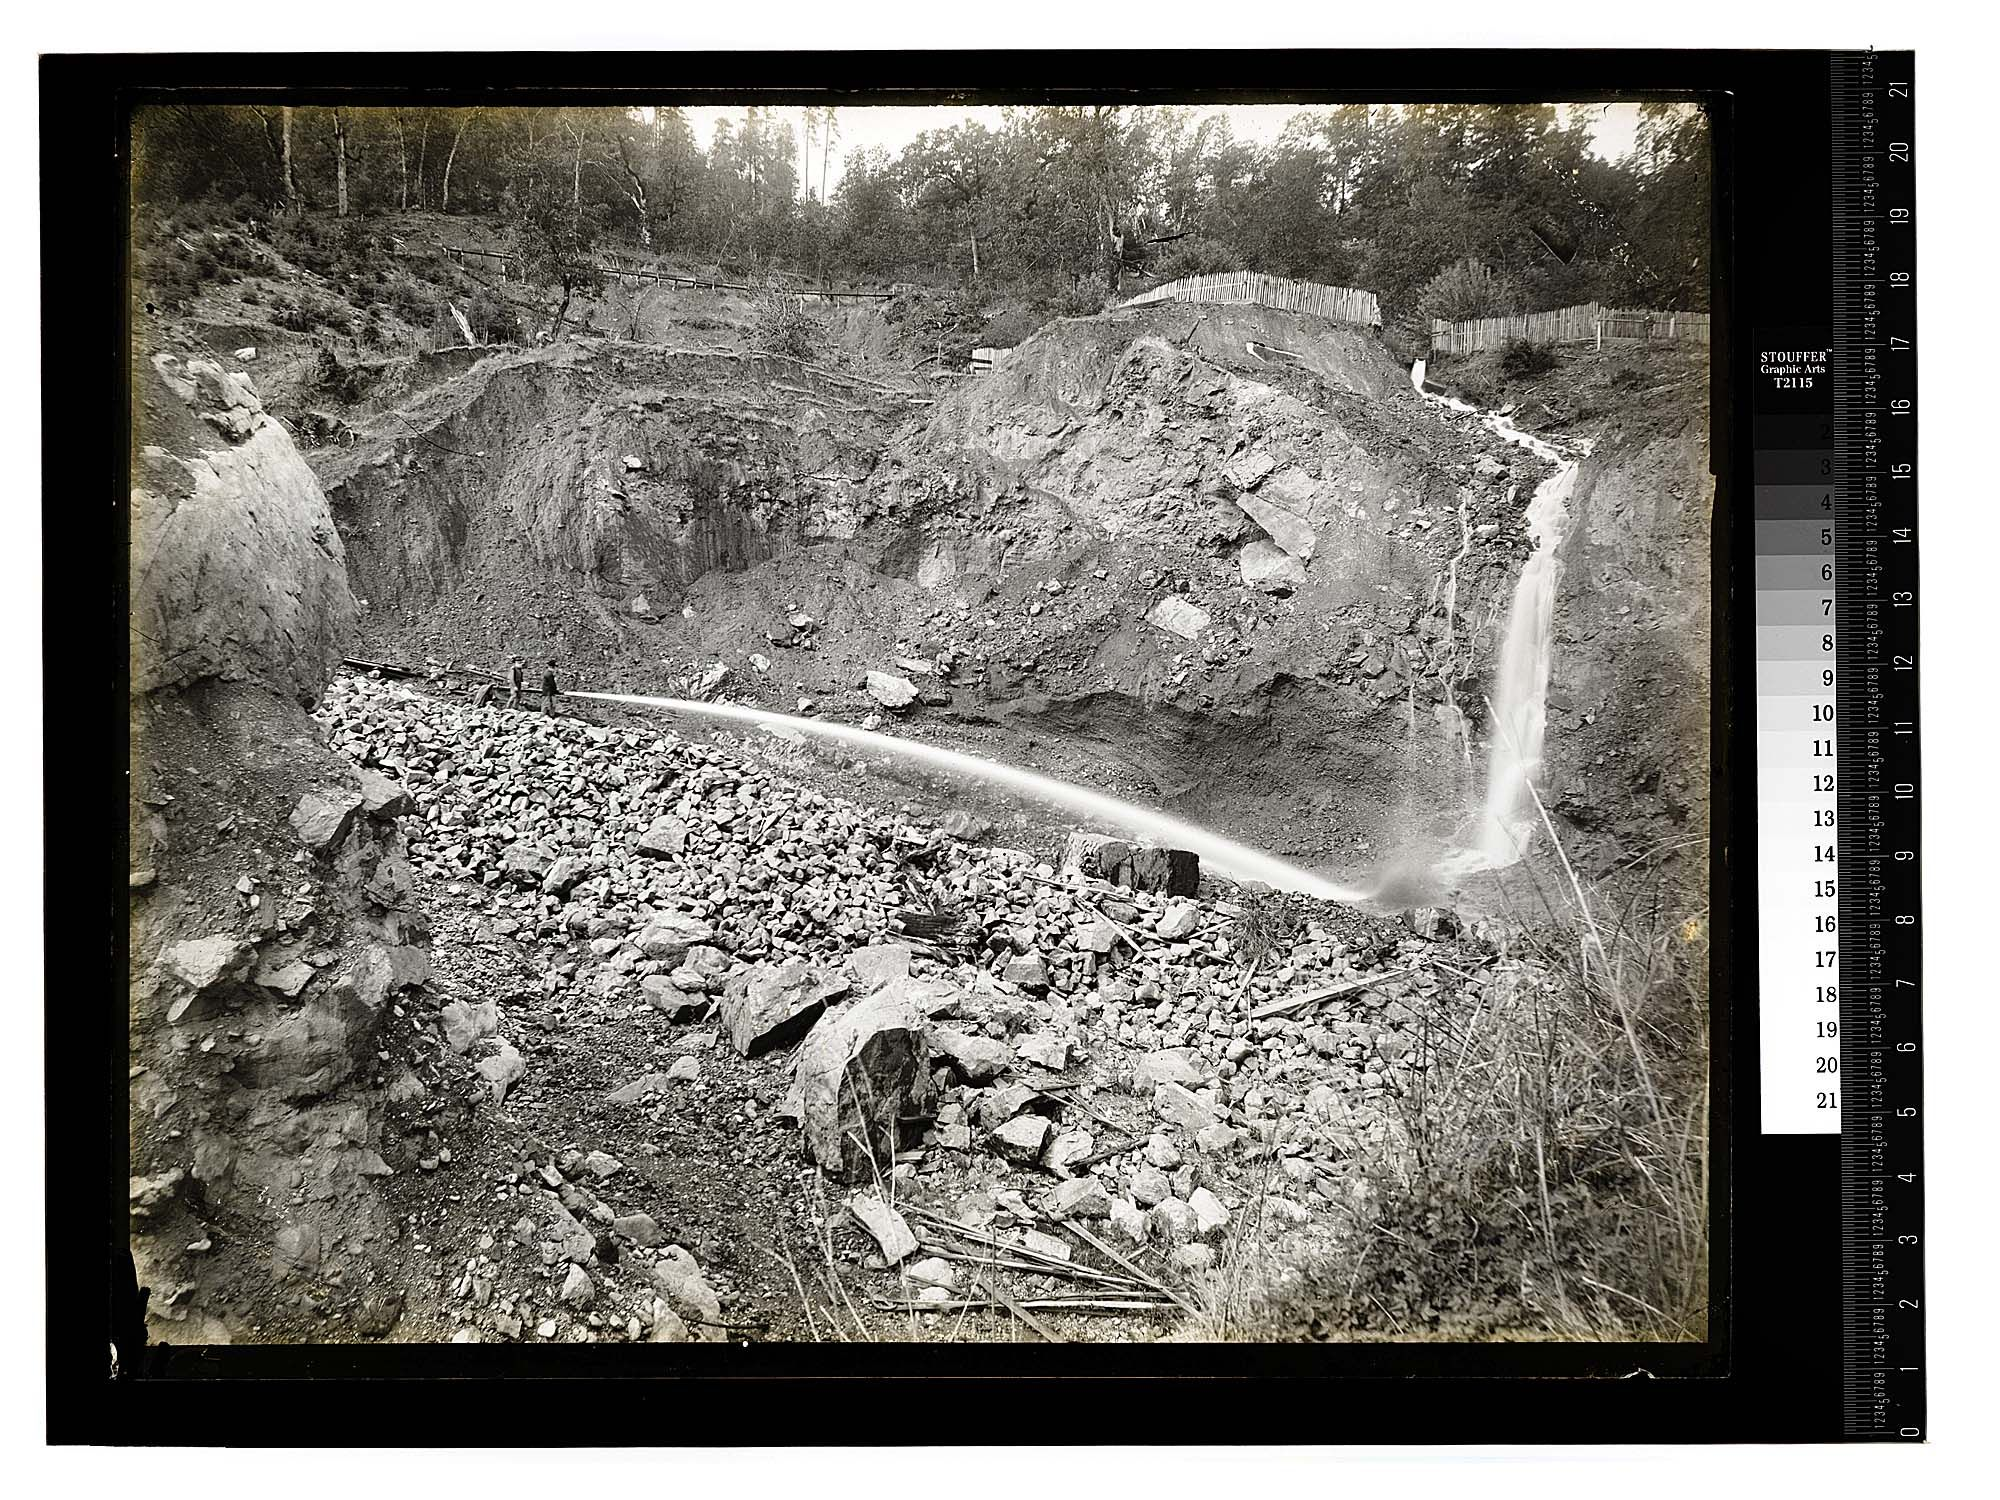 Ten Eyck's Gold Mine, Klamath River/Scene in Humboldt County [Hydraulic Mining - Orleans/unknown] Date: Unknown Ericson Photograph Collection, Region 01 North and northeastern Humboldt Count Humboldt State University Library